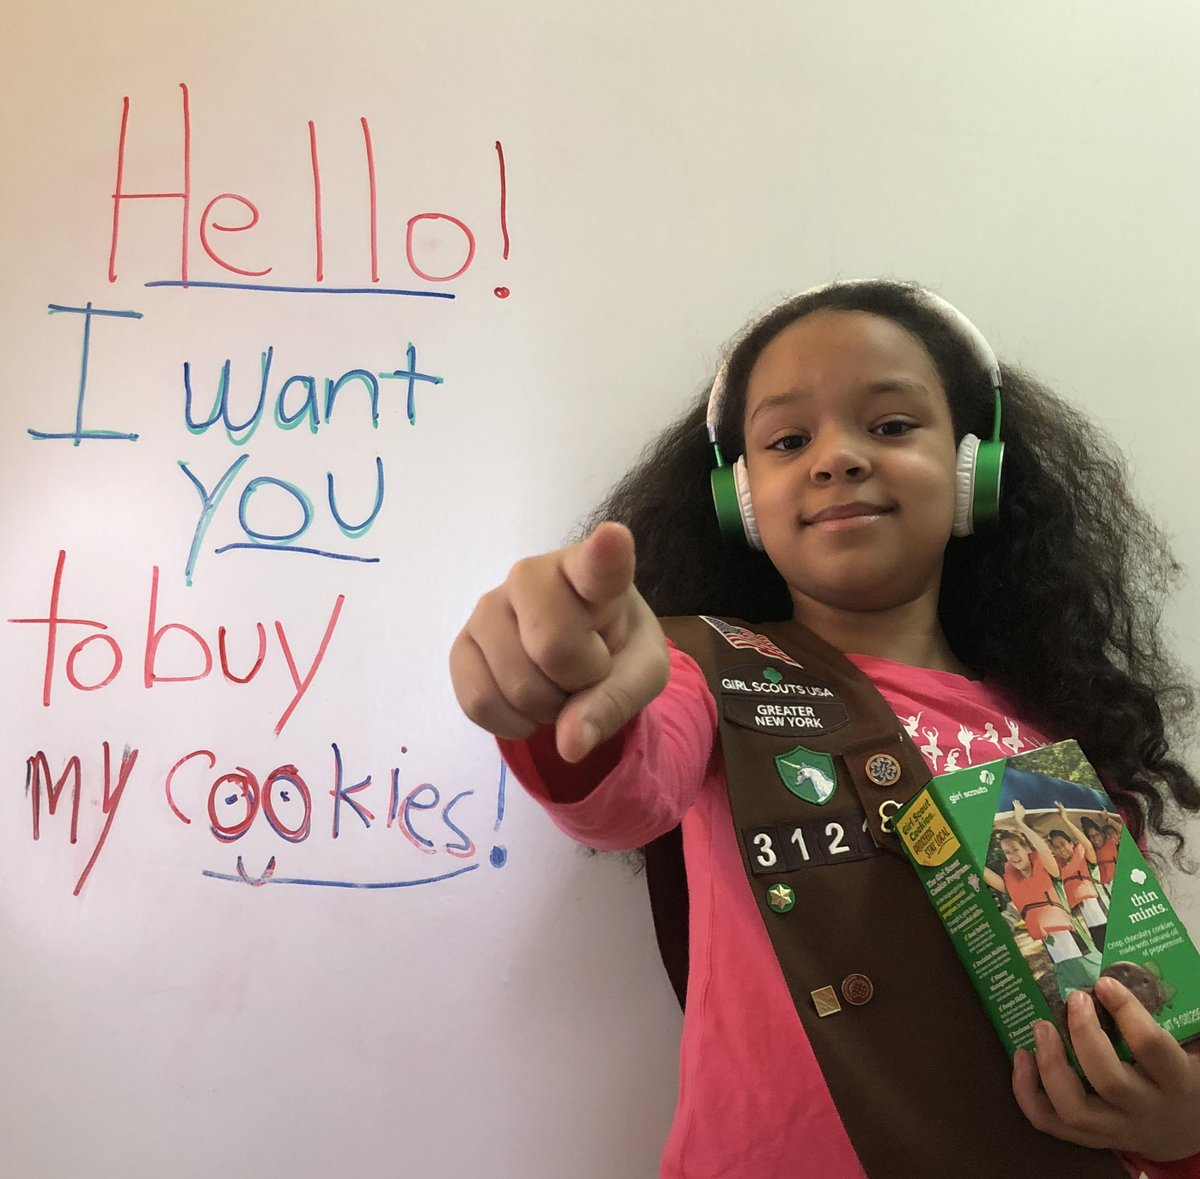 We could use your help as we figure out #COVID19 & cookies.Please support our #GirlScout.Buy #girlscoutcookies online.They will be shipped to you or loved ones within a week.#ThinMints #Samoas #Trefoils #Dosidos #Lemonups #Smores #Toffetastic #Tagalongs